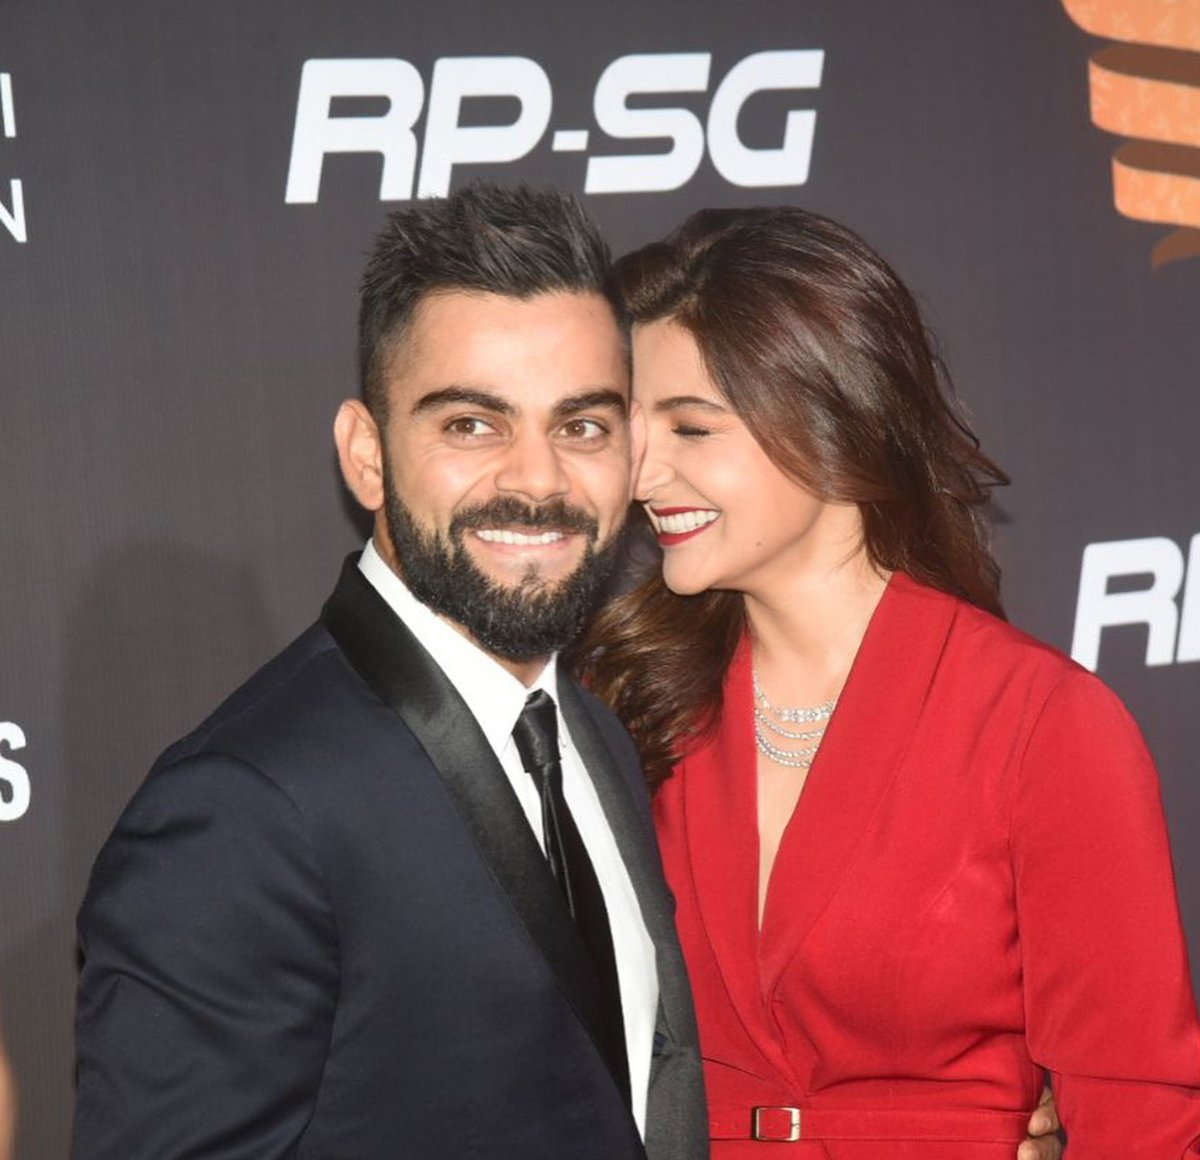 Cricket South Africa to provide the best hospitality to Virat Kohli and Anushka Sharma